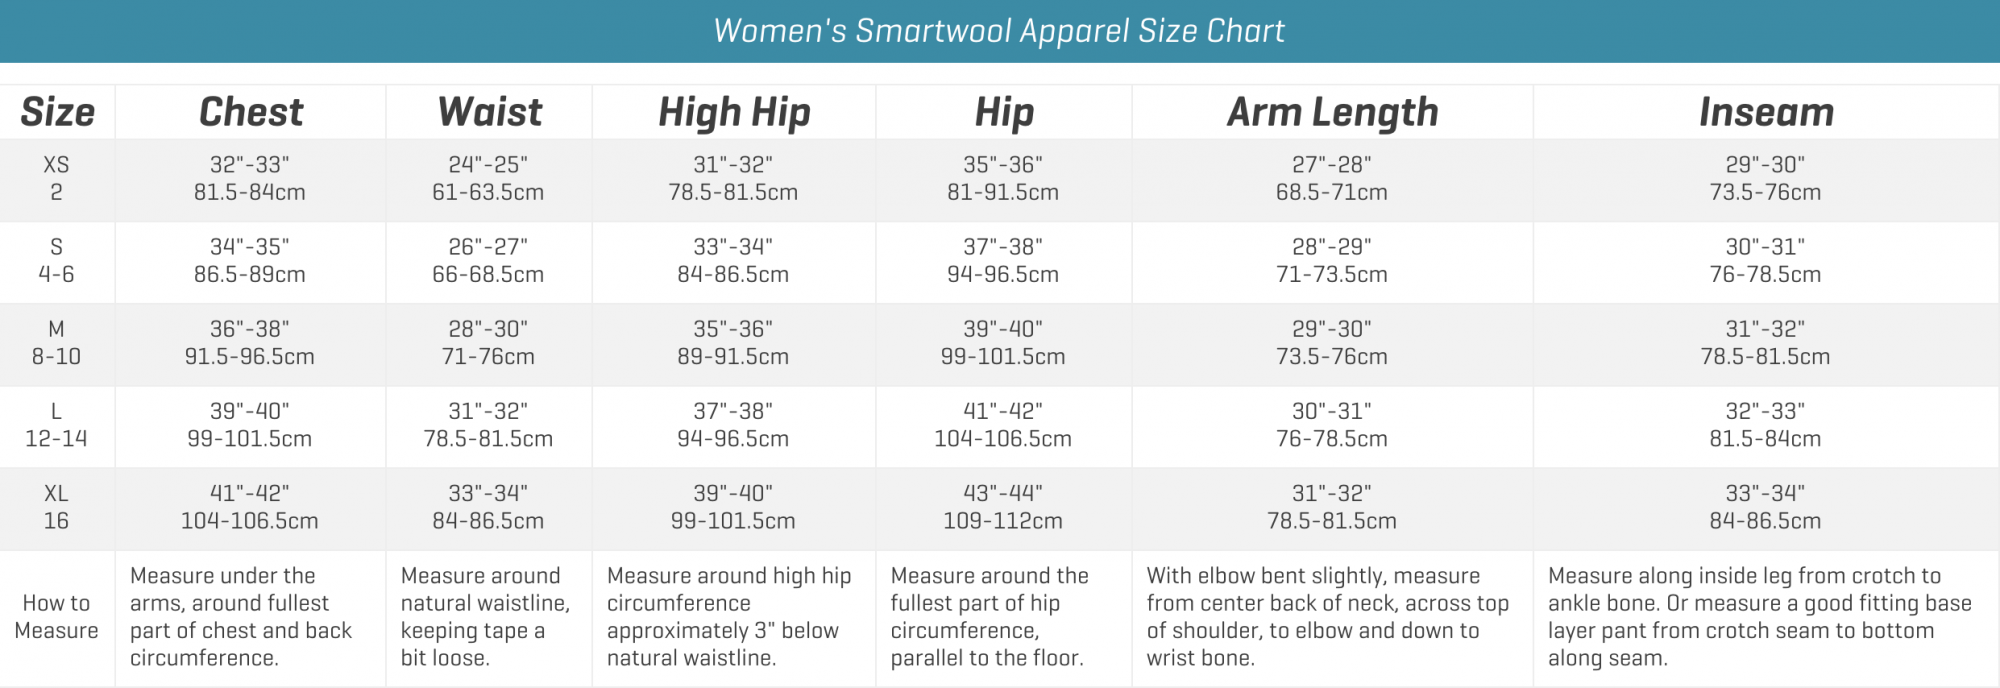 Smartwool Women Apparel